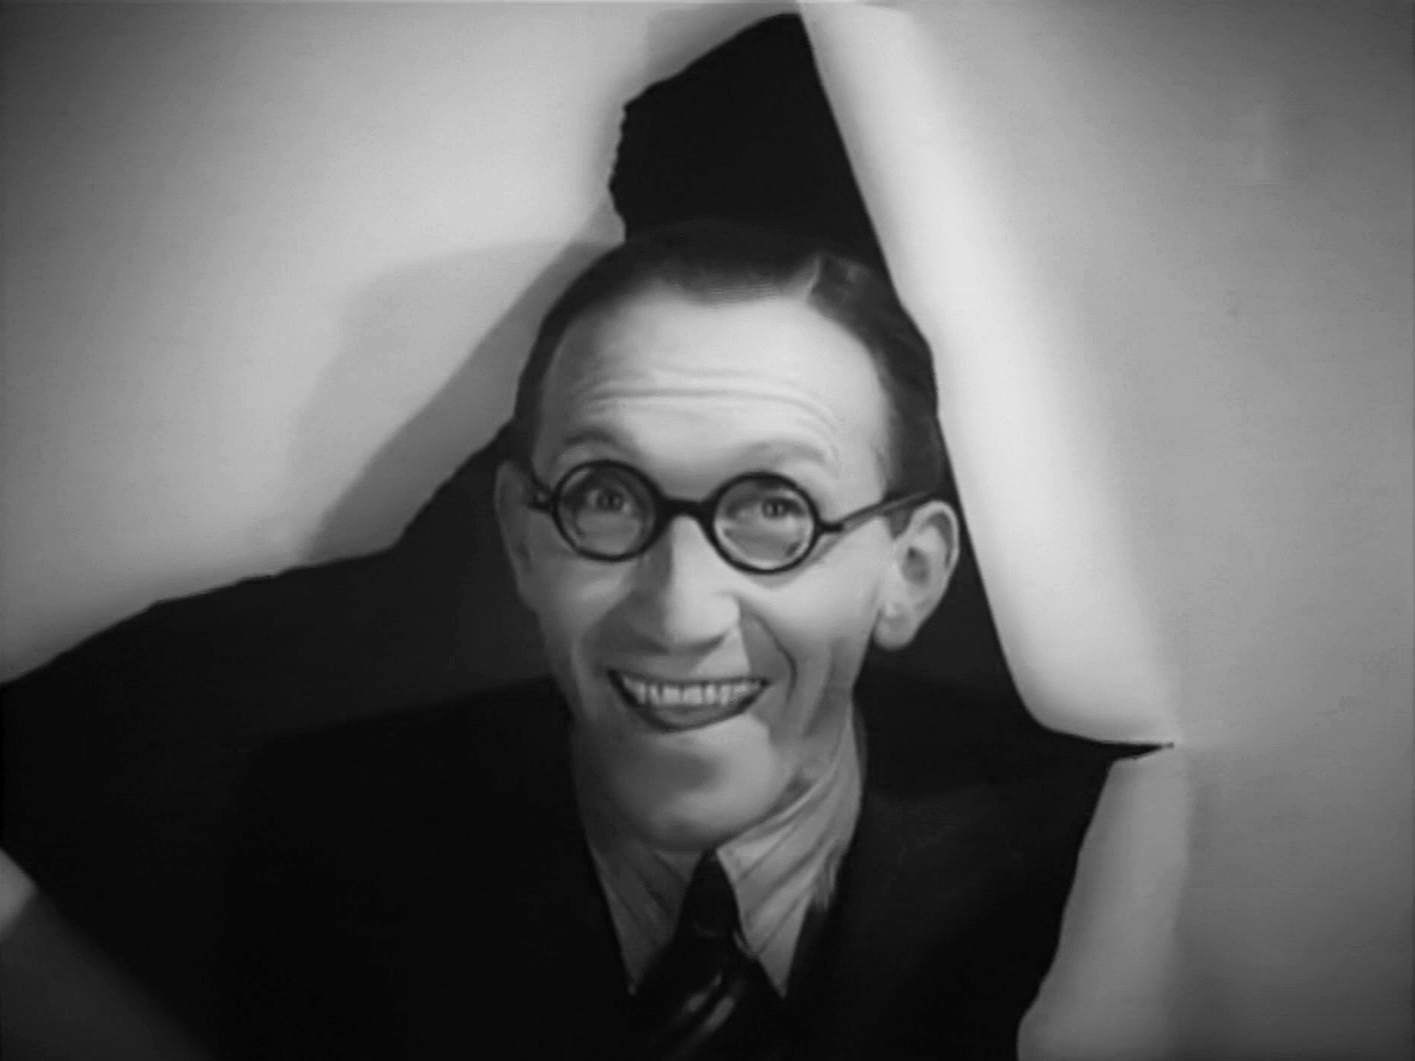 Main title from Band Waggon (1940) (4) featuring Arthur Askey